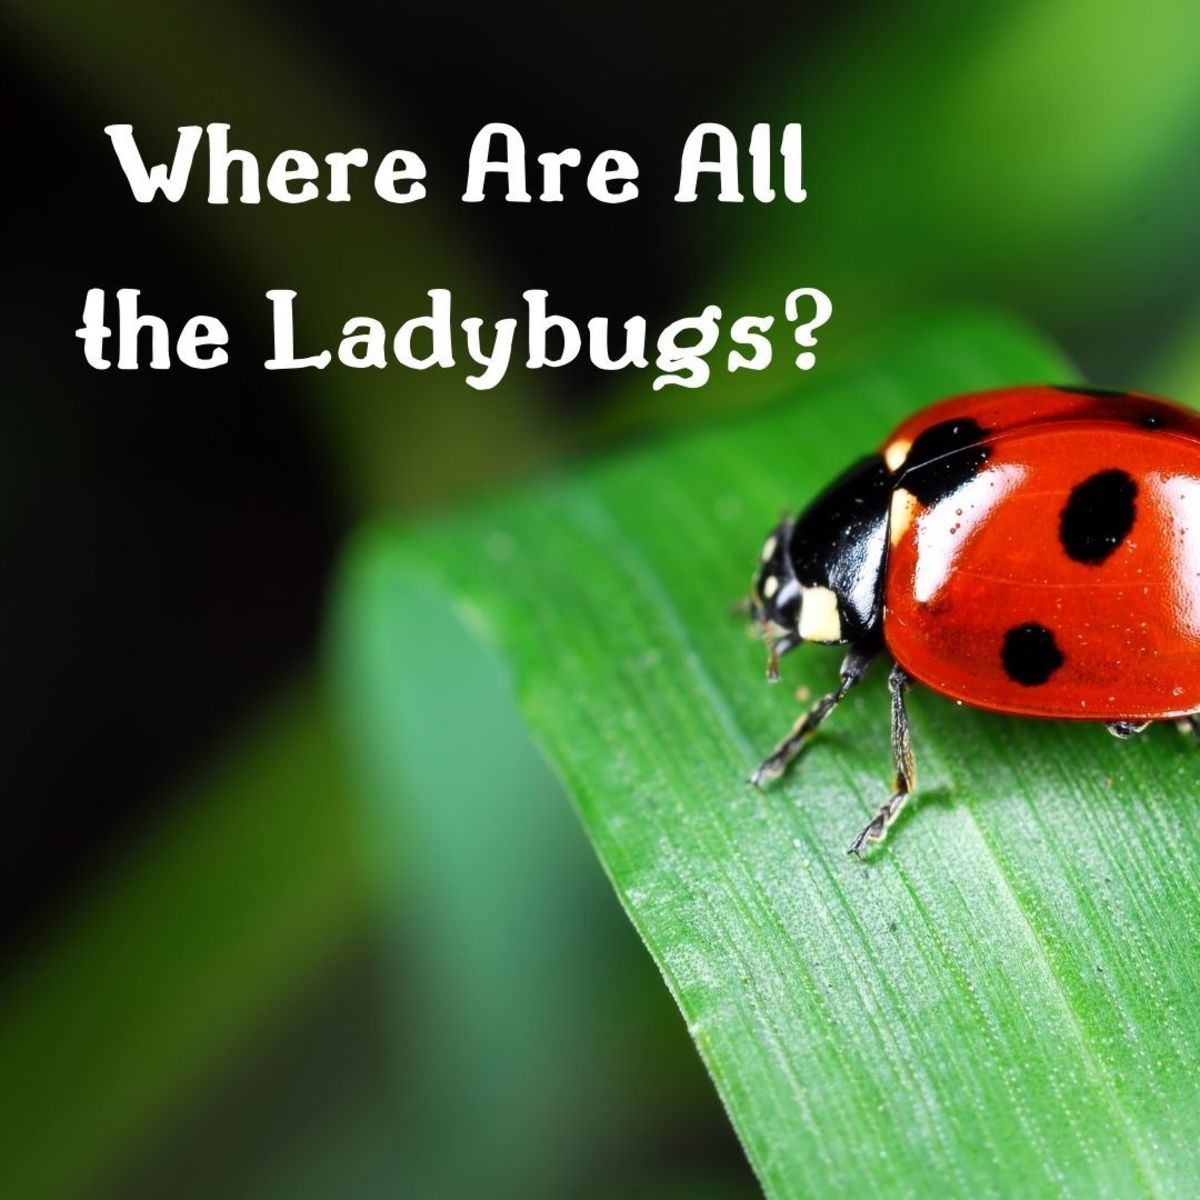 What has happened to the ladybugs?